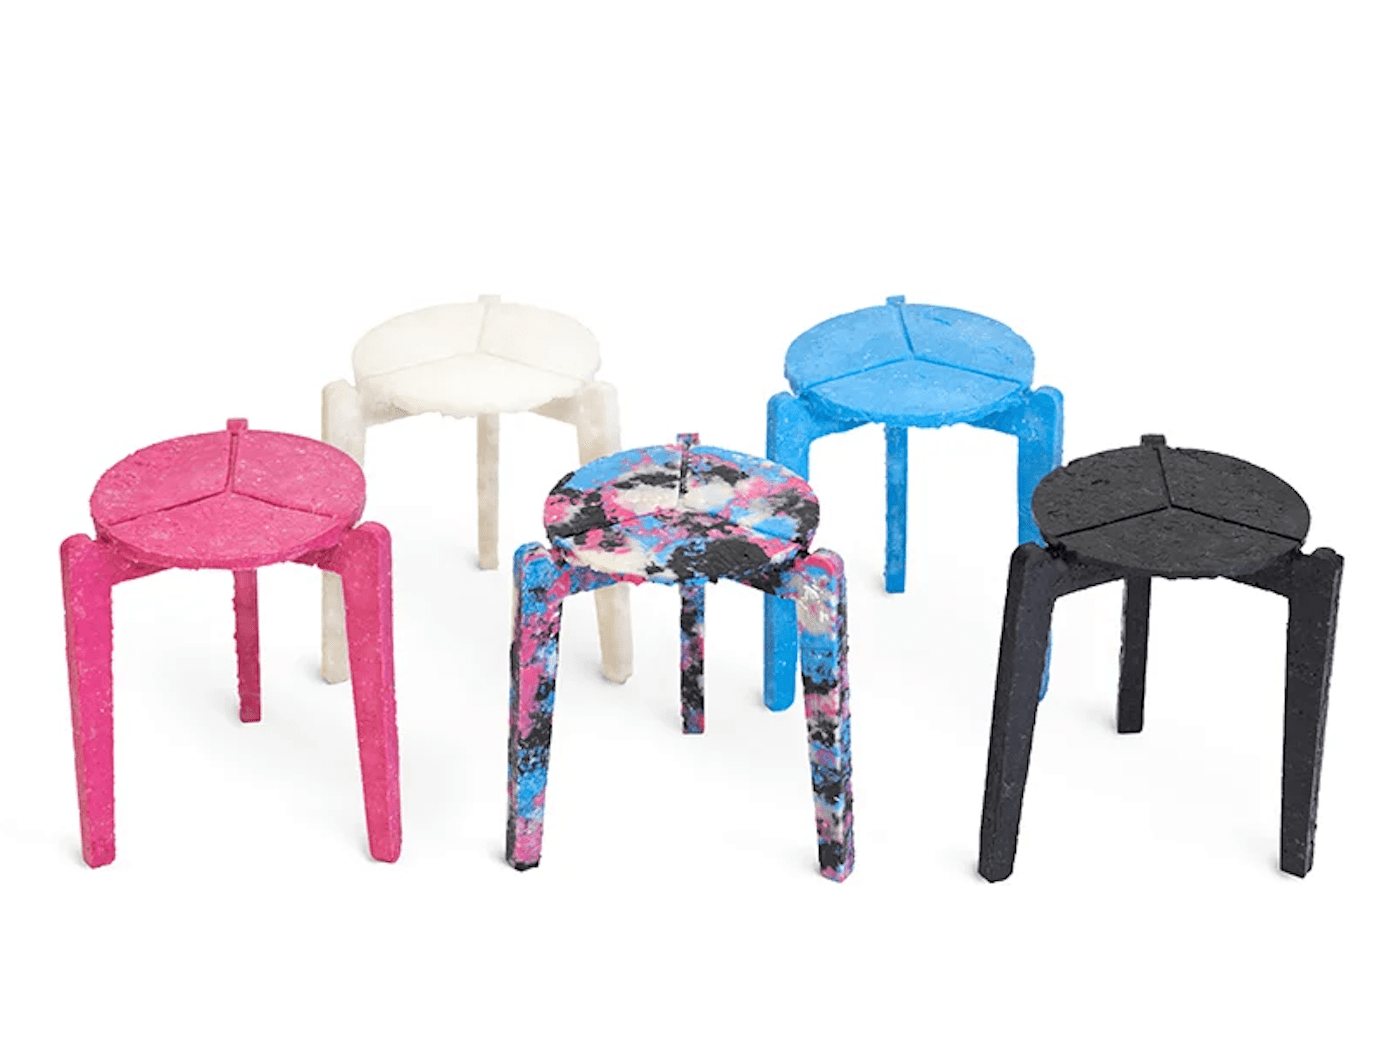 Colour range of stools made from recycled surgical masks